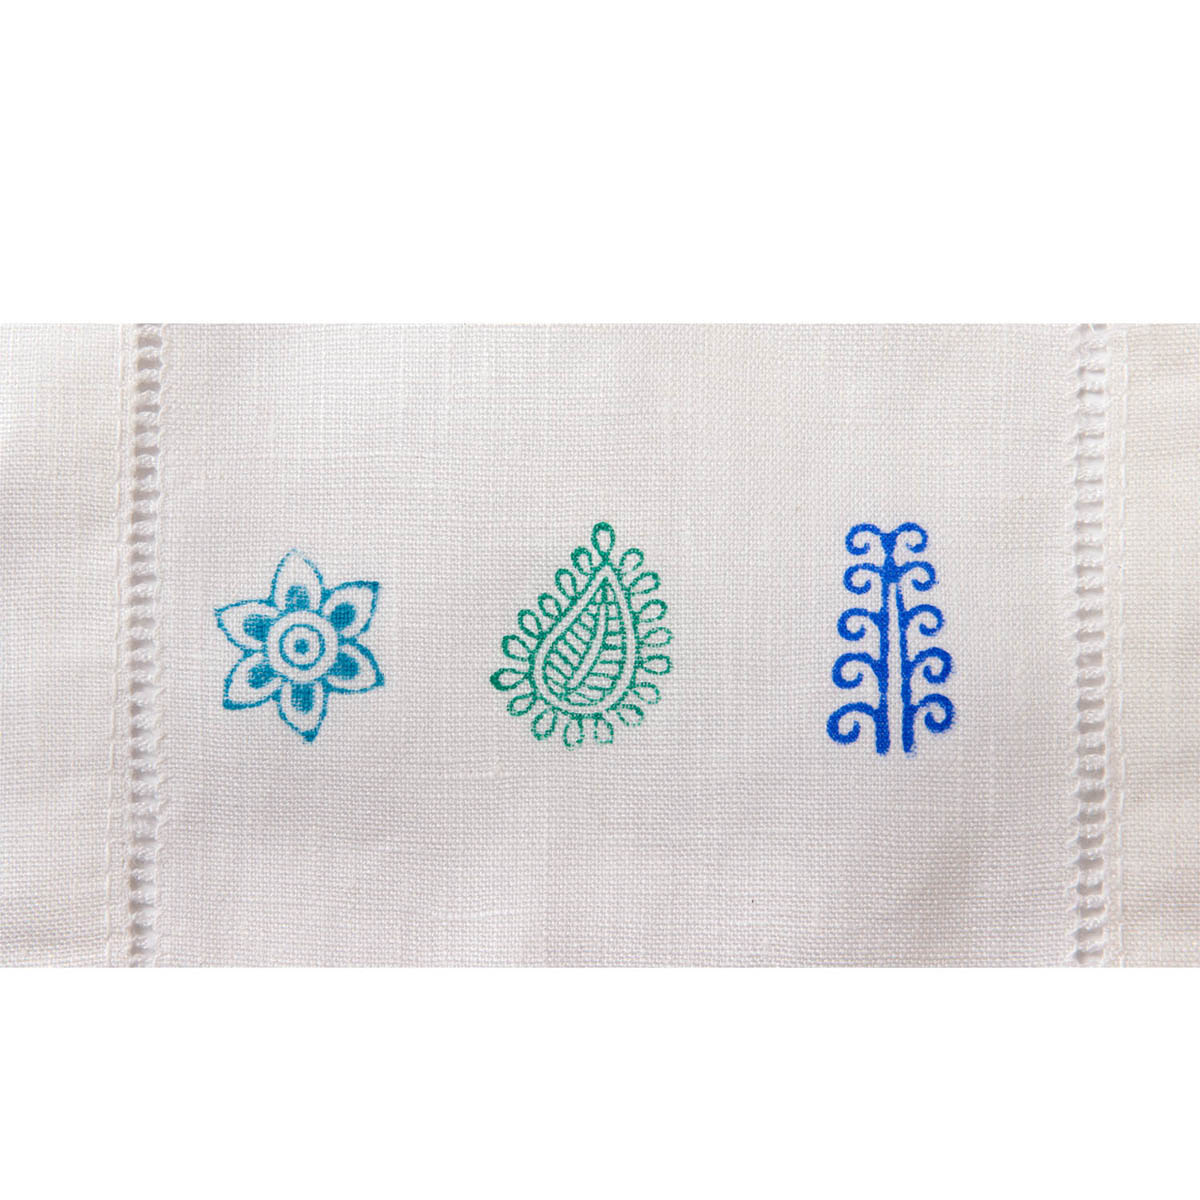 Fabric Creations™ Block Printing Stamps - Mini Set - Traditional Indian